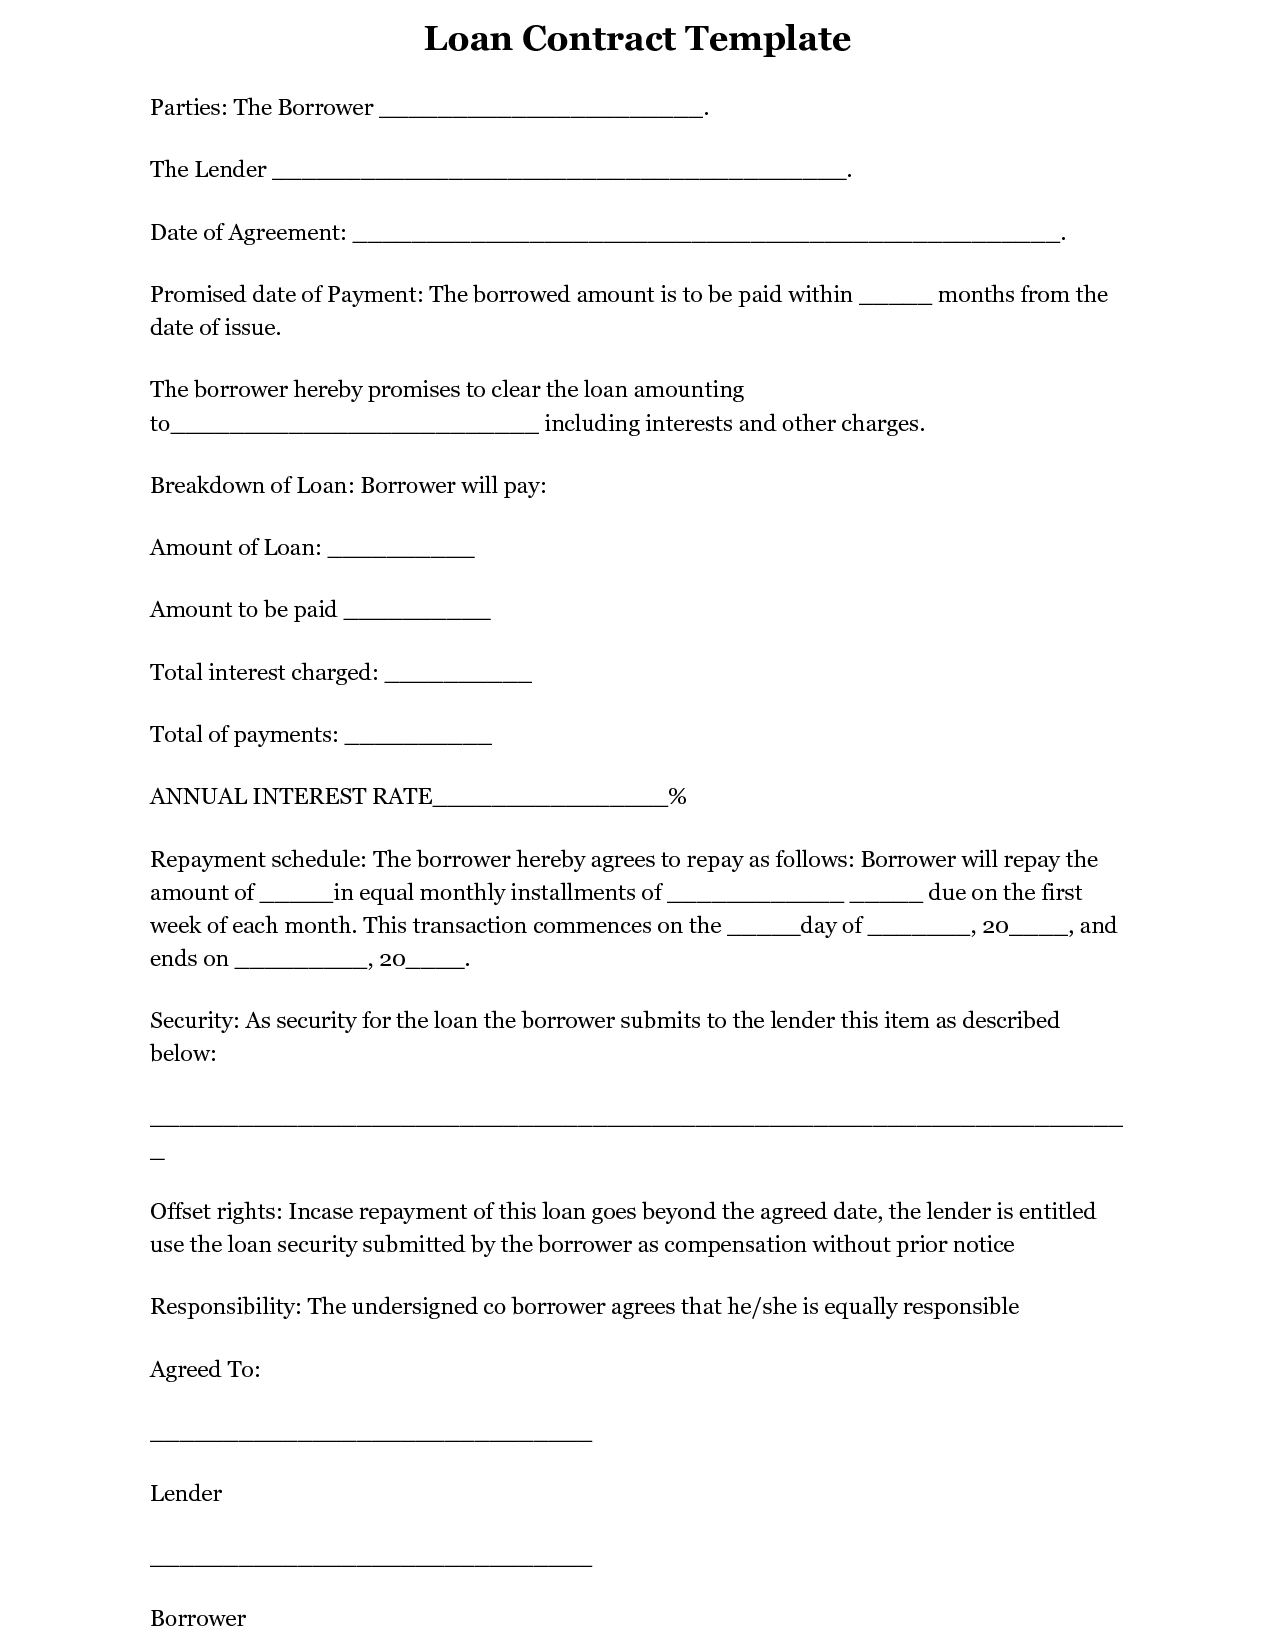 simple interest loan agreement template – Financial Loan Agreement Template